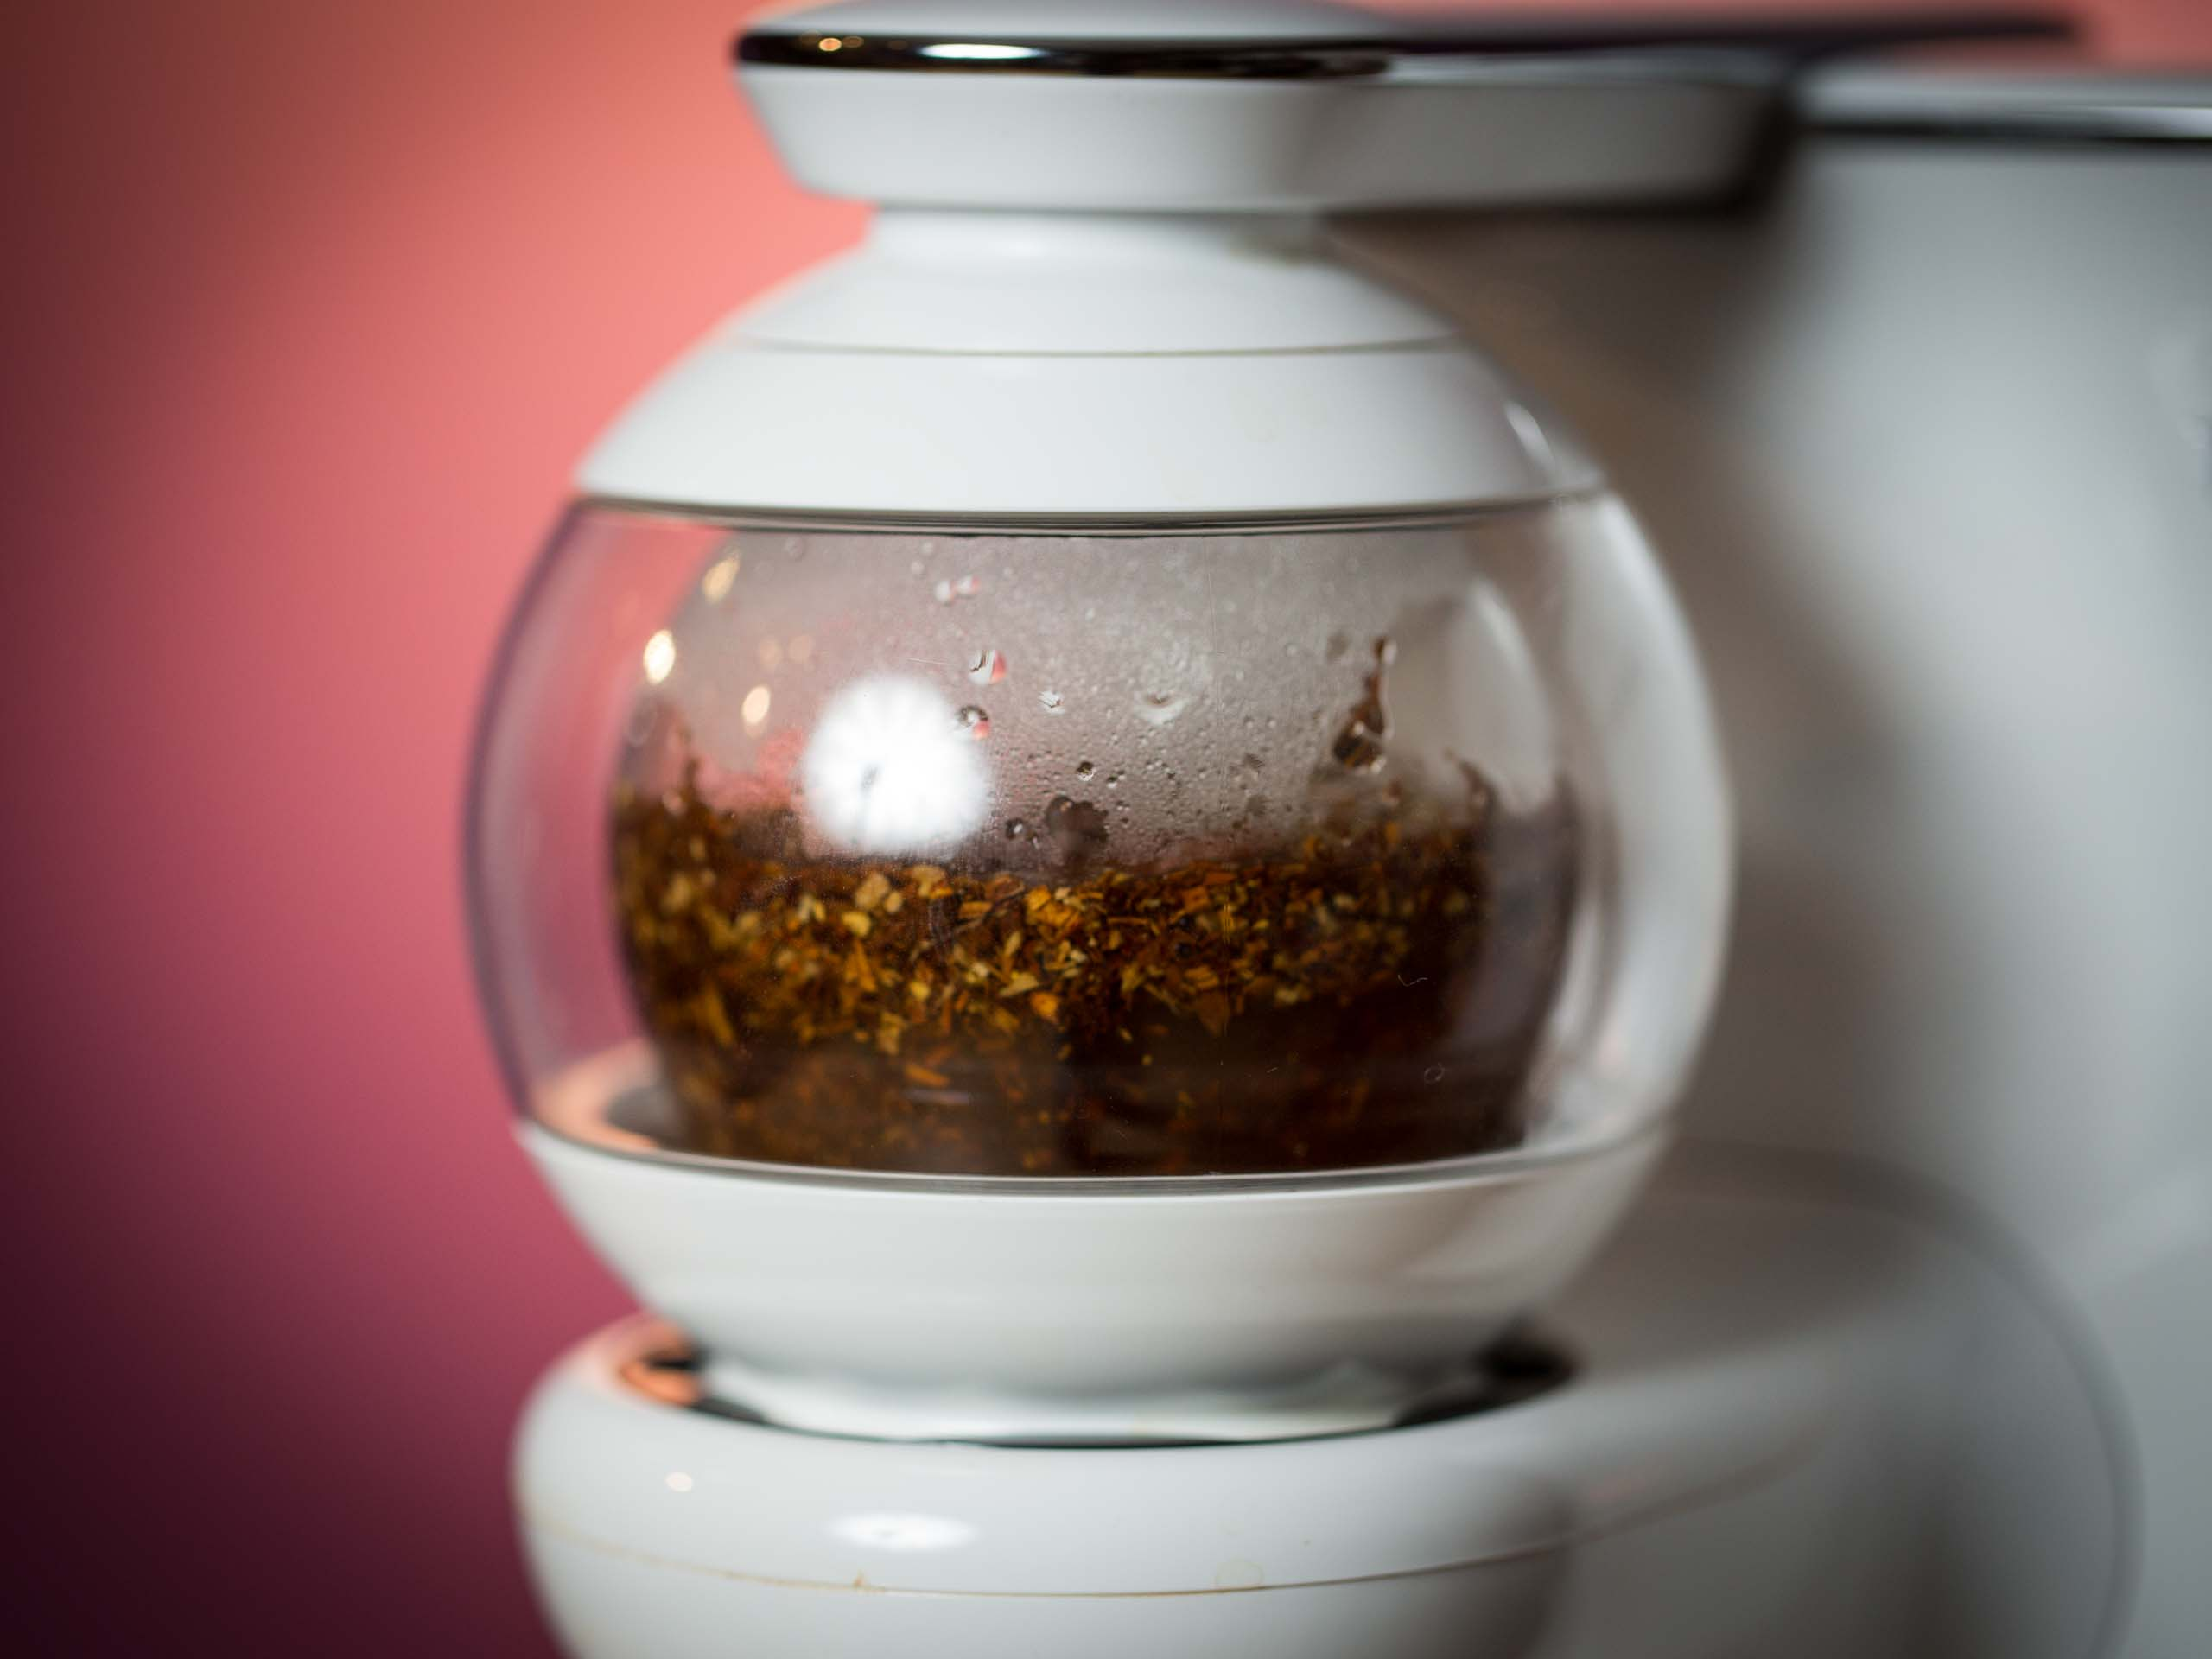 The Infuser really puts on a show